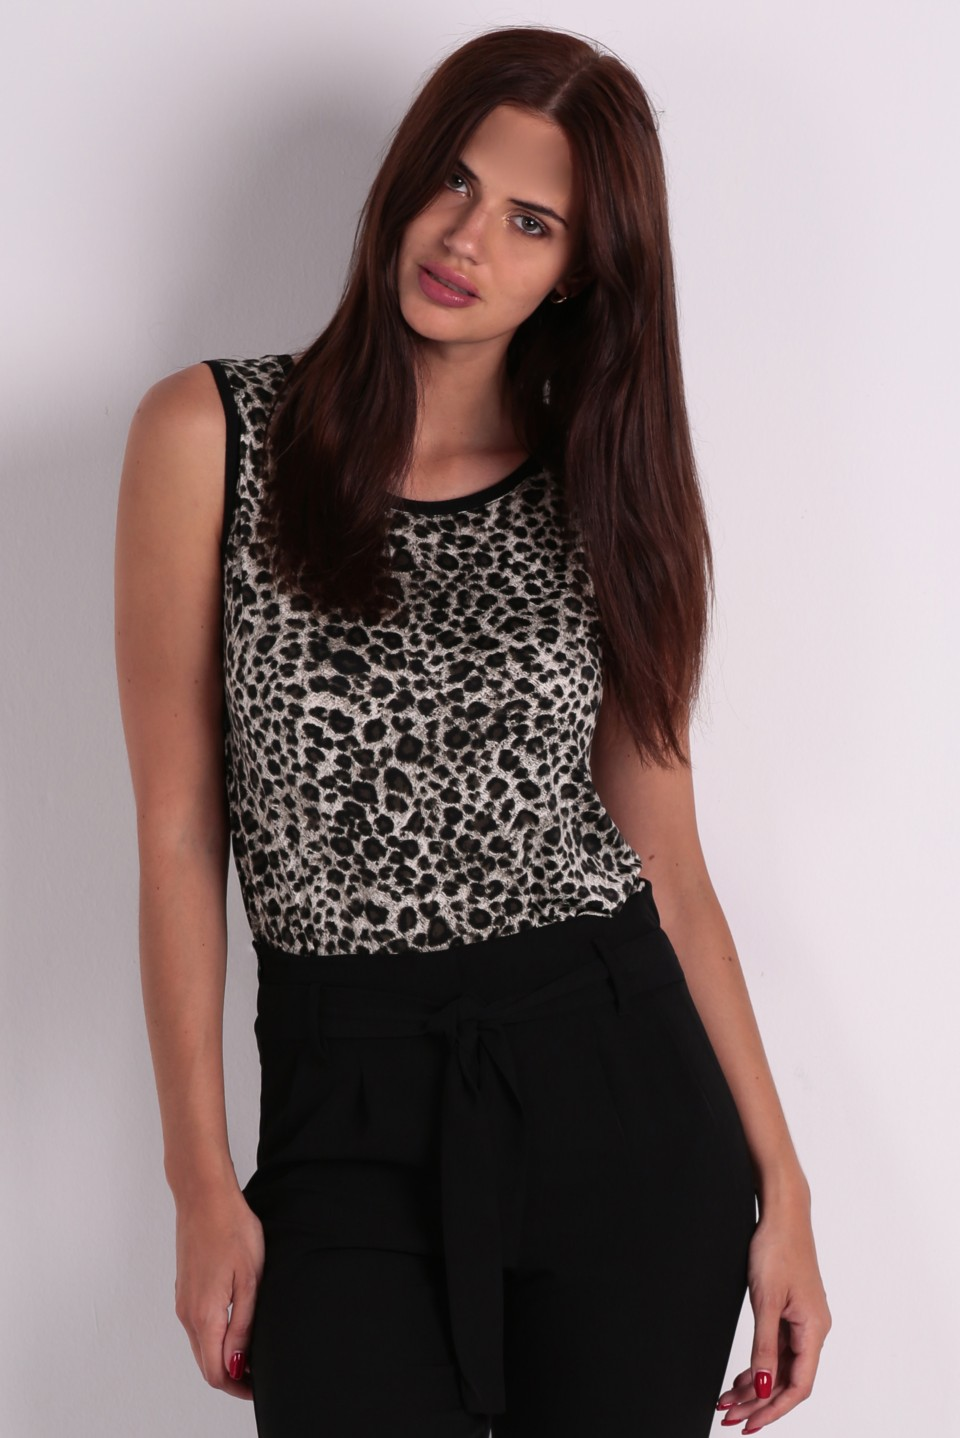 Camiseta estampado leopardo